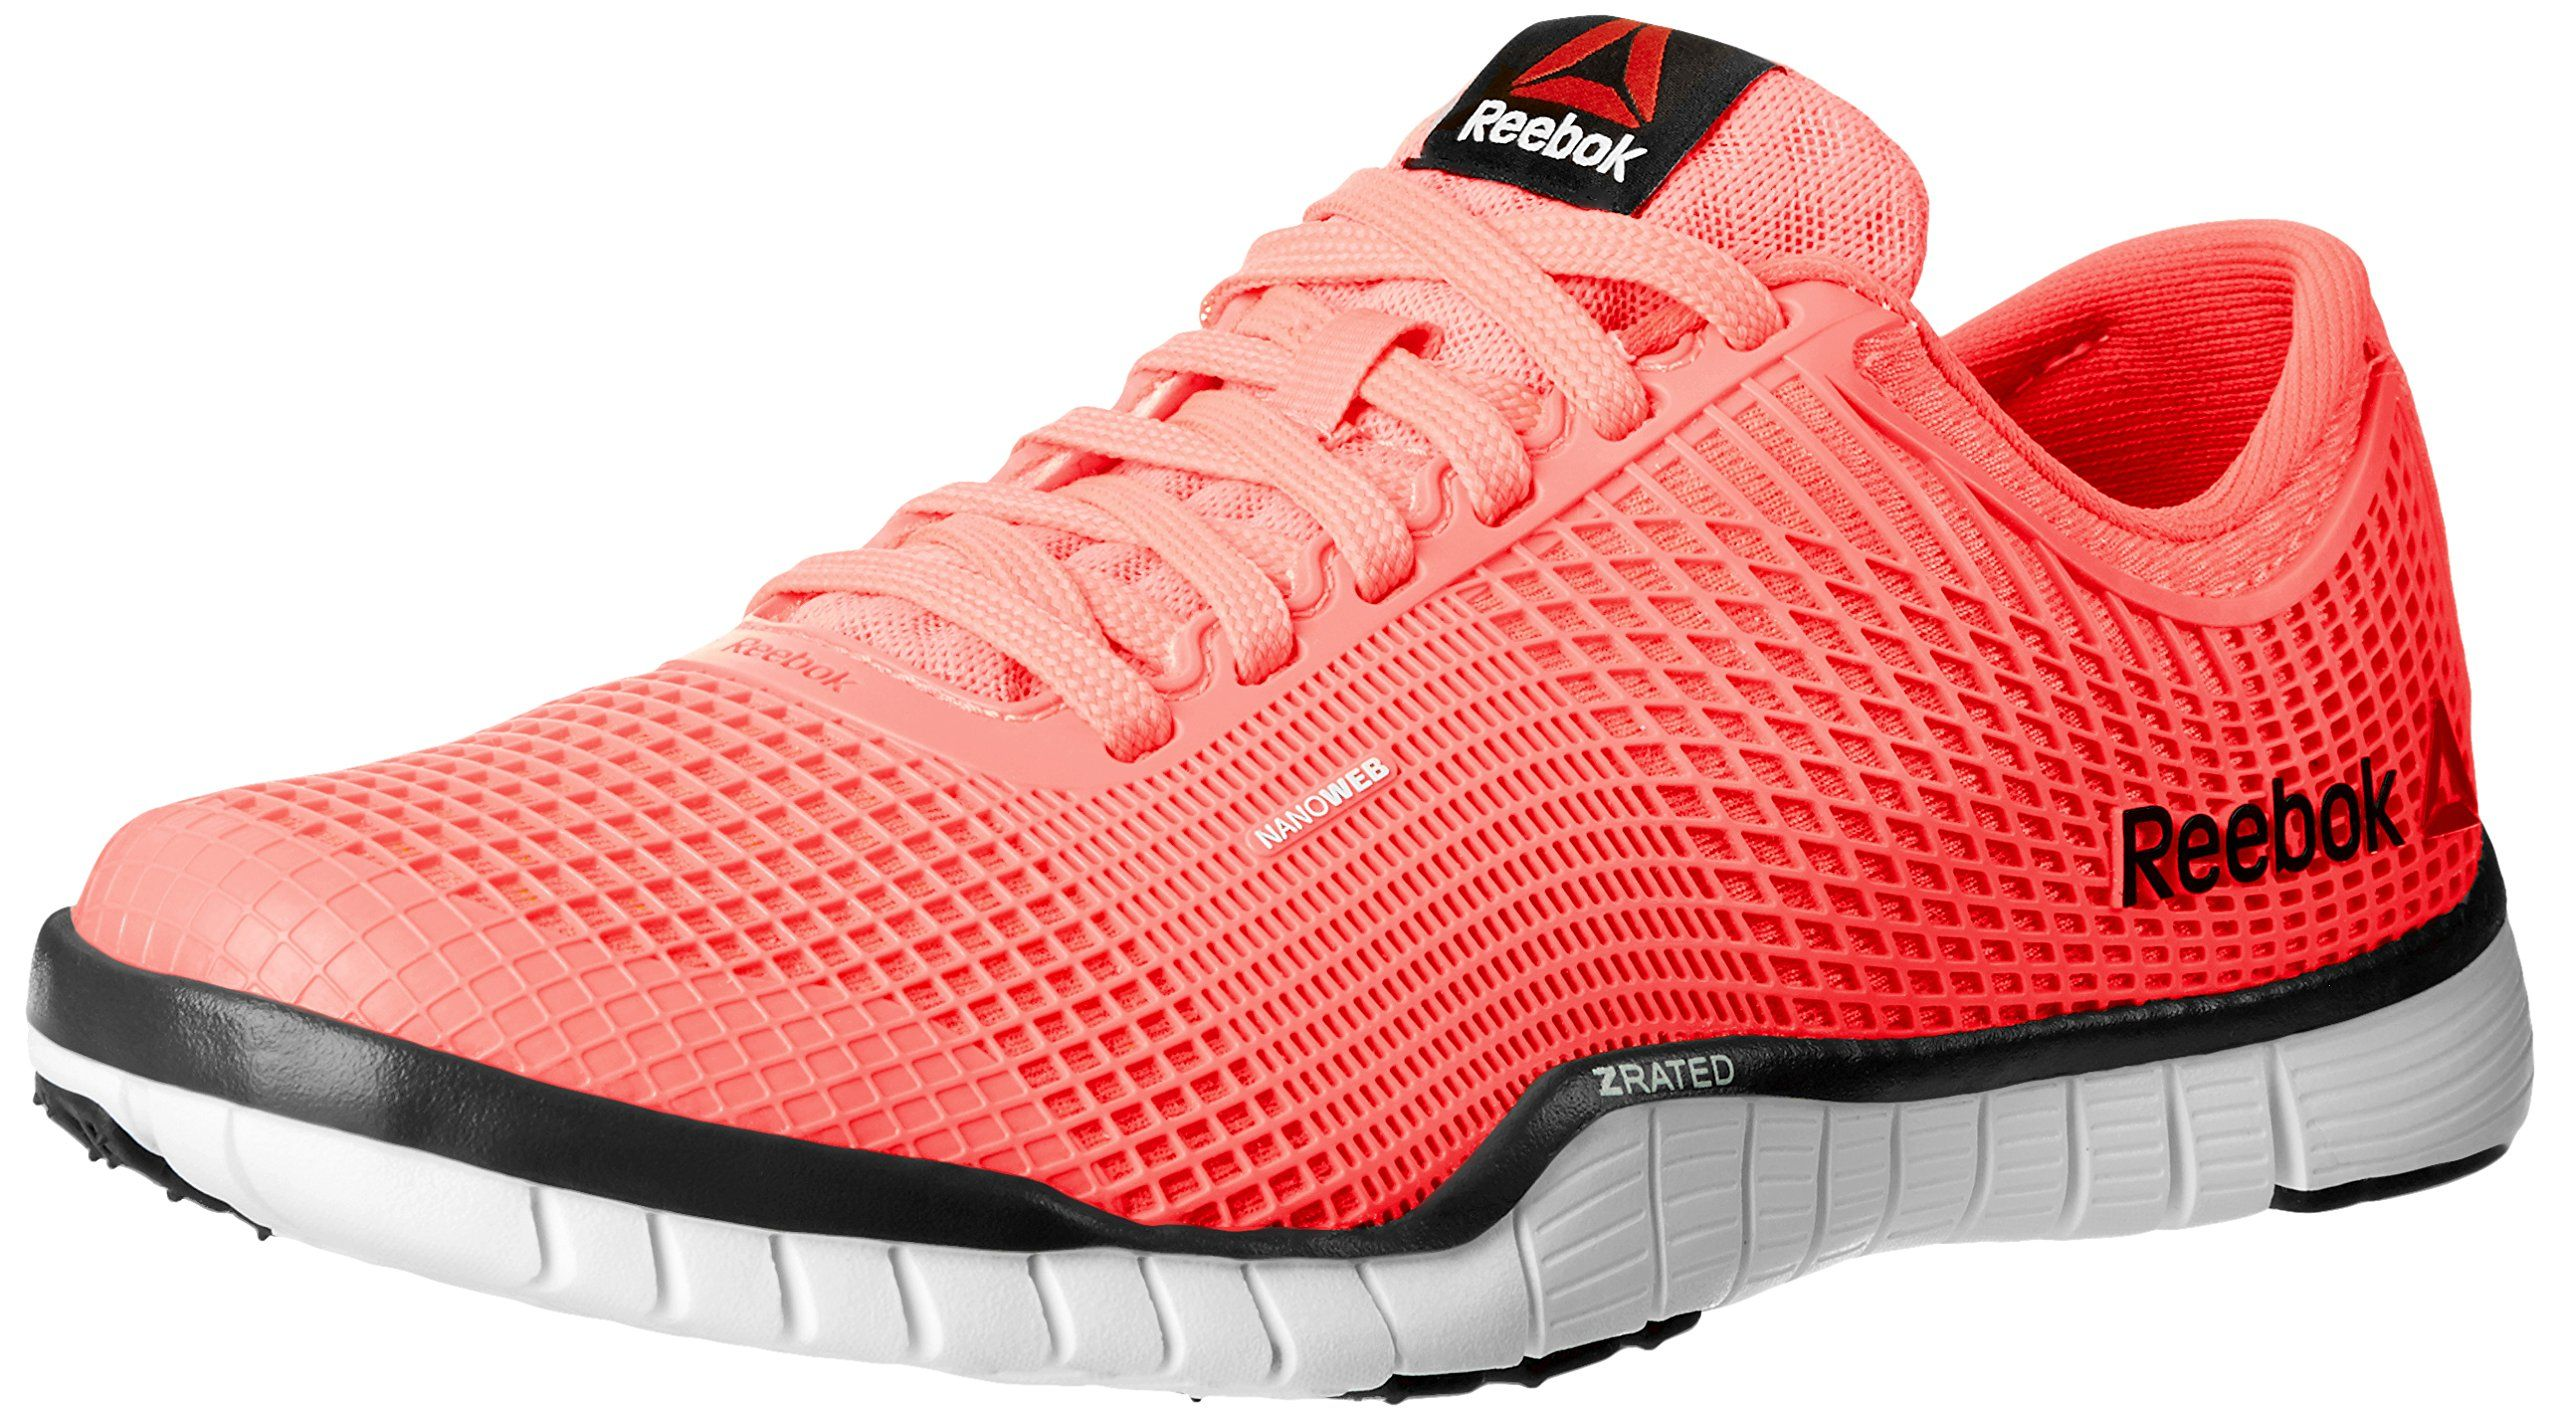 outlet online attractivedesigns official sale Amazon.com: Reebok Women's ZQuick TR Cross-Training Shoe ...